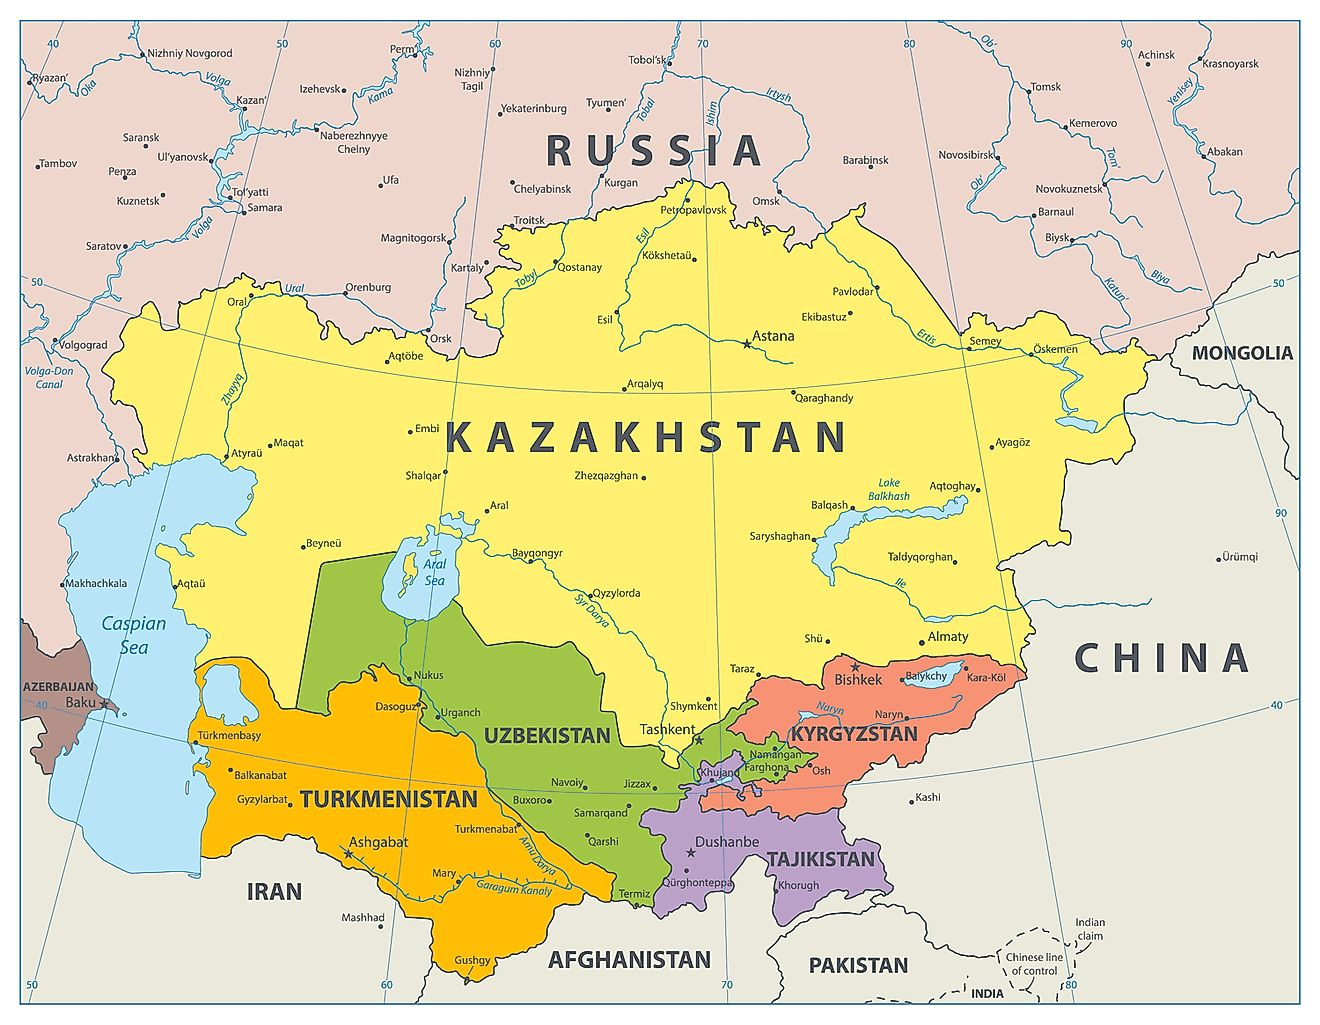 Map of Central Asia. Image credit: Cartarium/Shutterstock.com